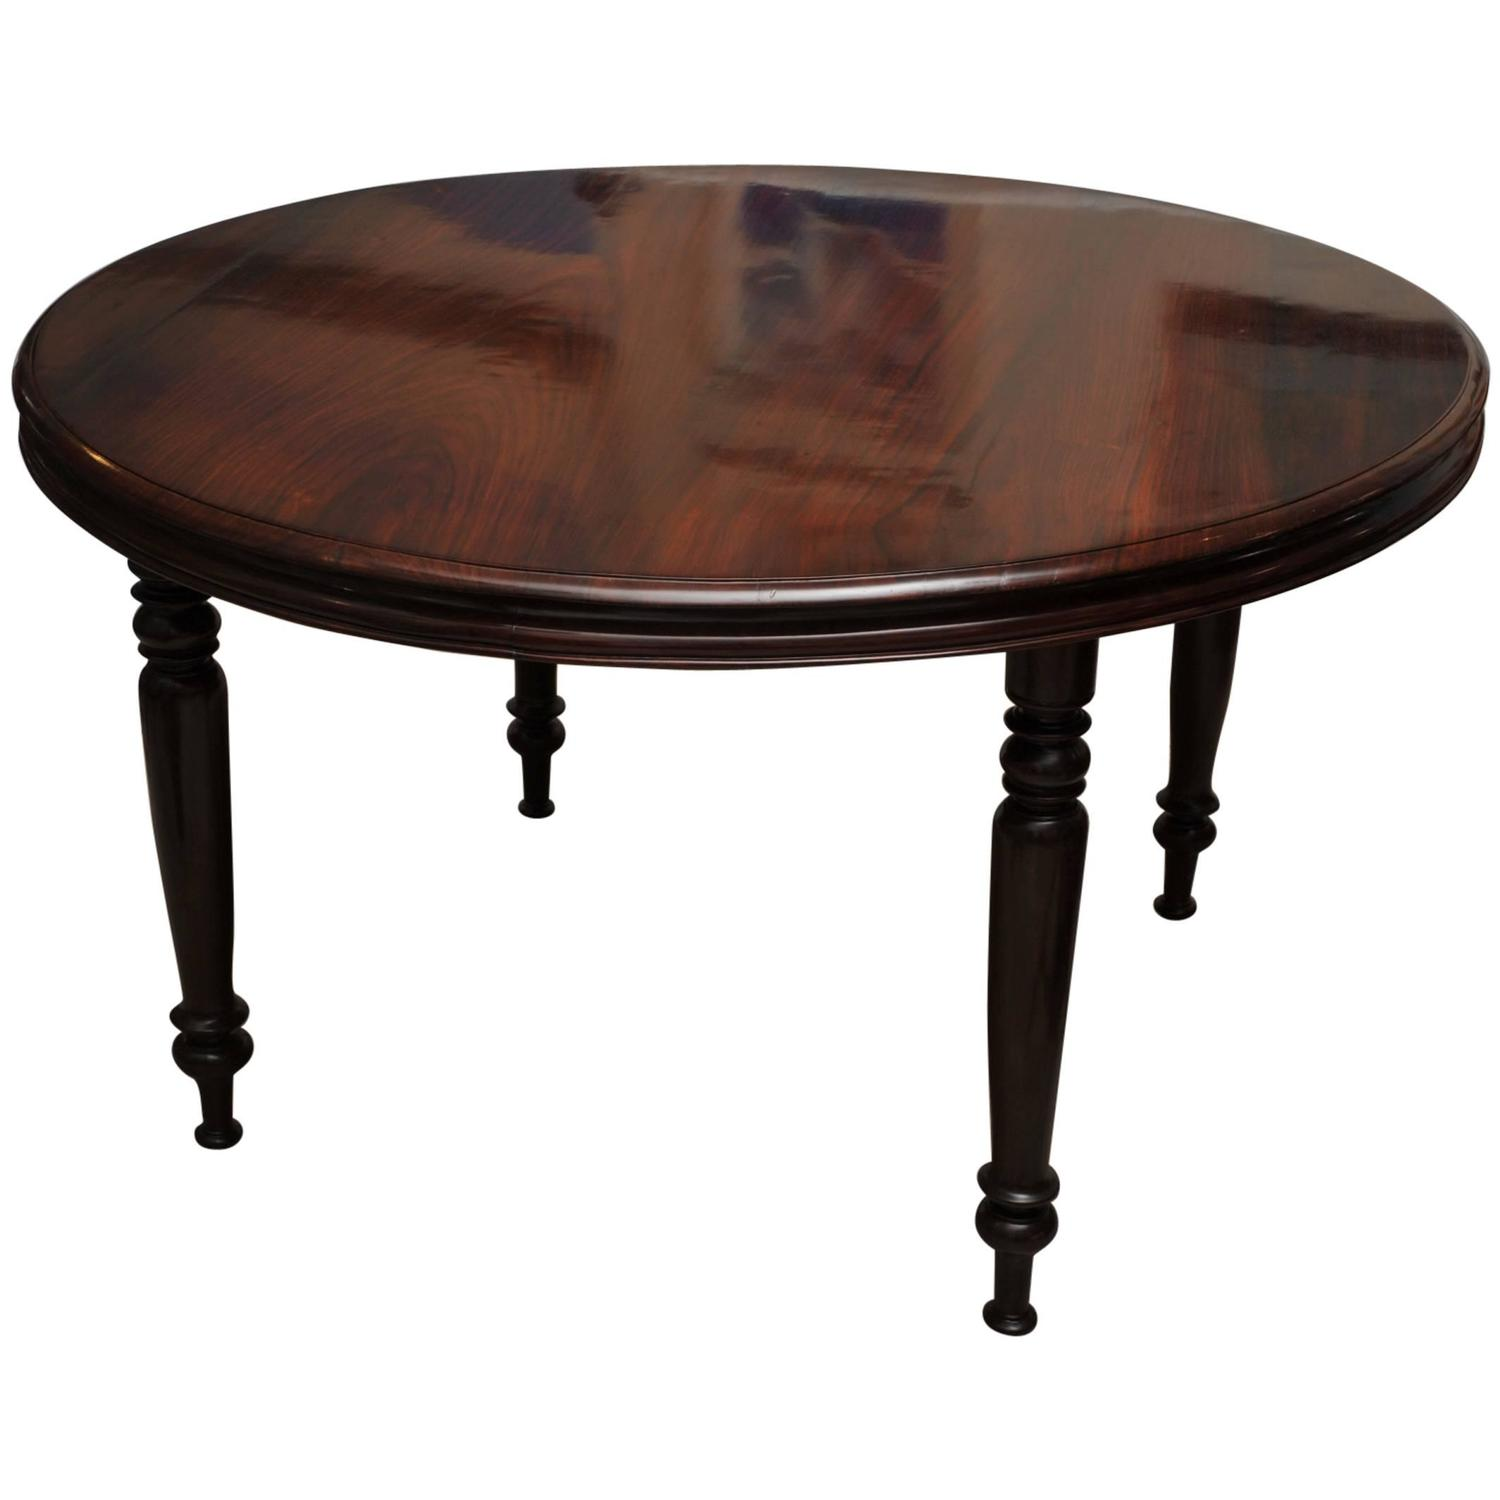 late 19th century british campaign rosewood round dining table for sale at 1stdibs. Black Bedroom Furniture Sets. Home Design Ideas